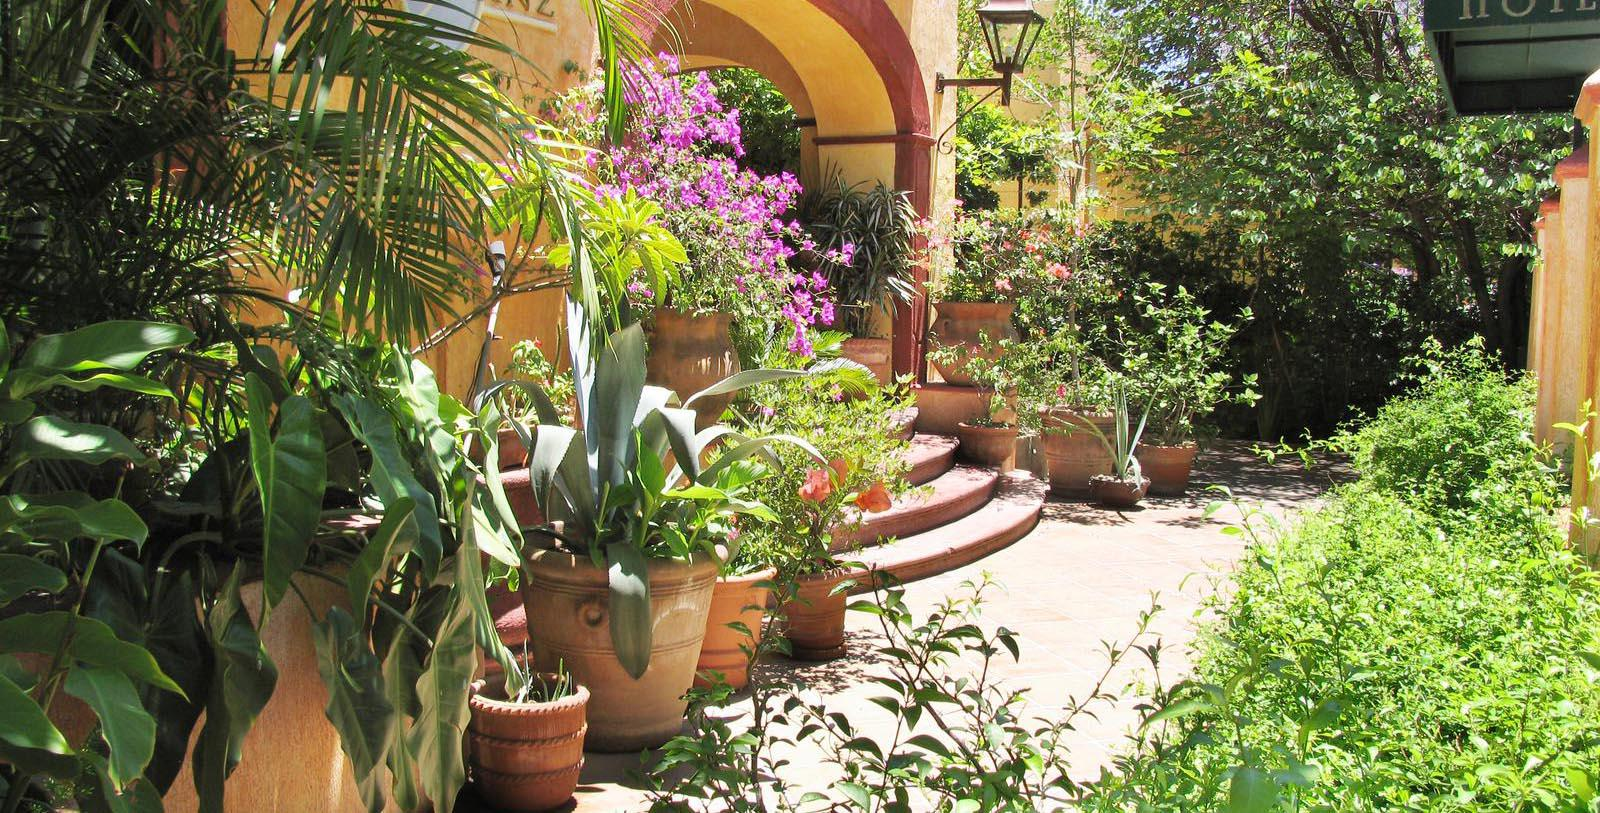 Discover the remarkable Spanish Colonial Revival architecture of the Villa Ganz Boutique Hotel.